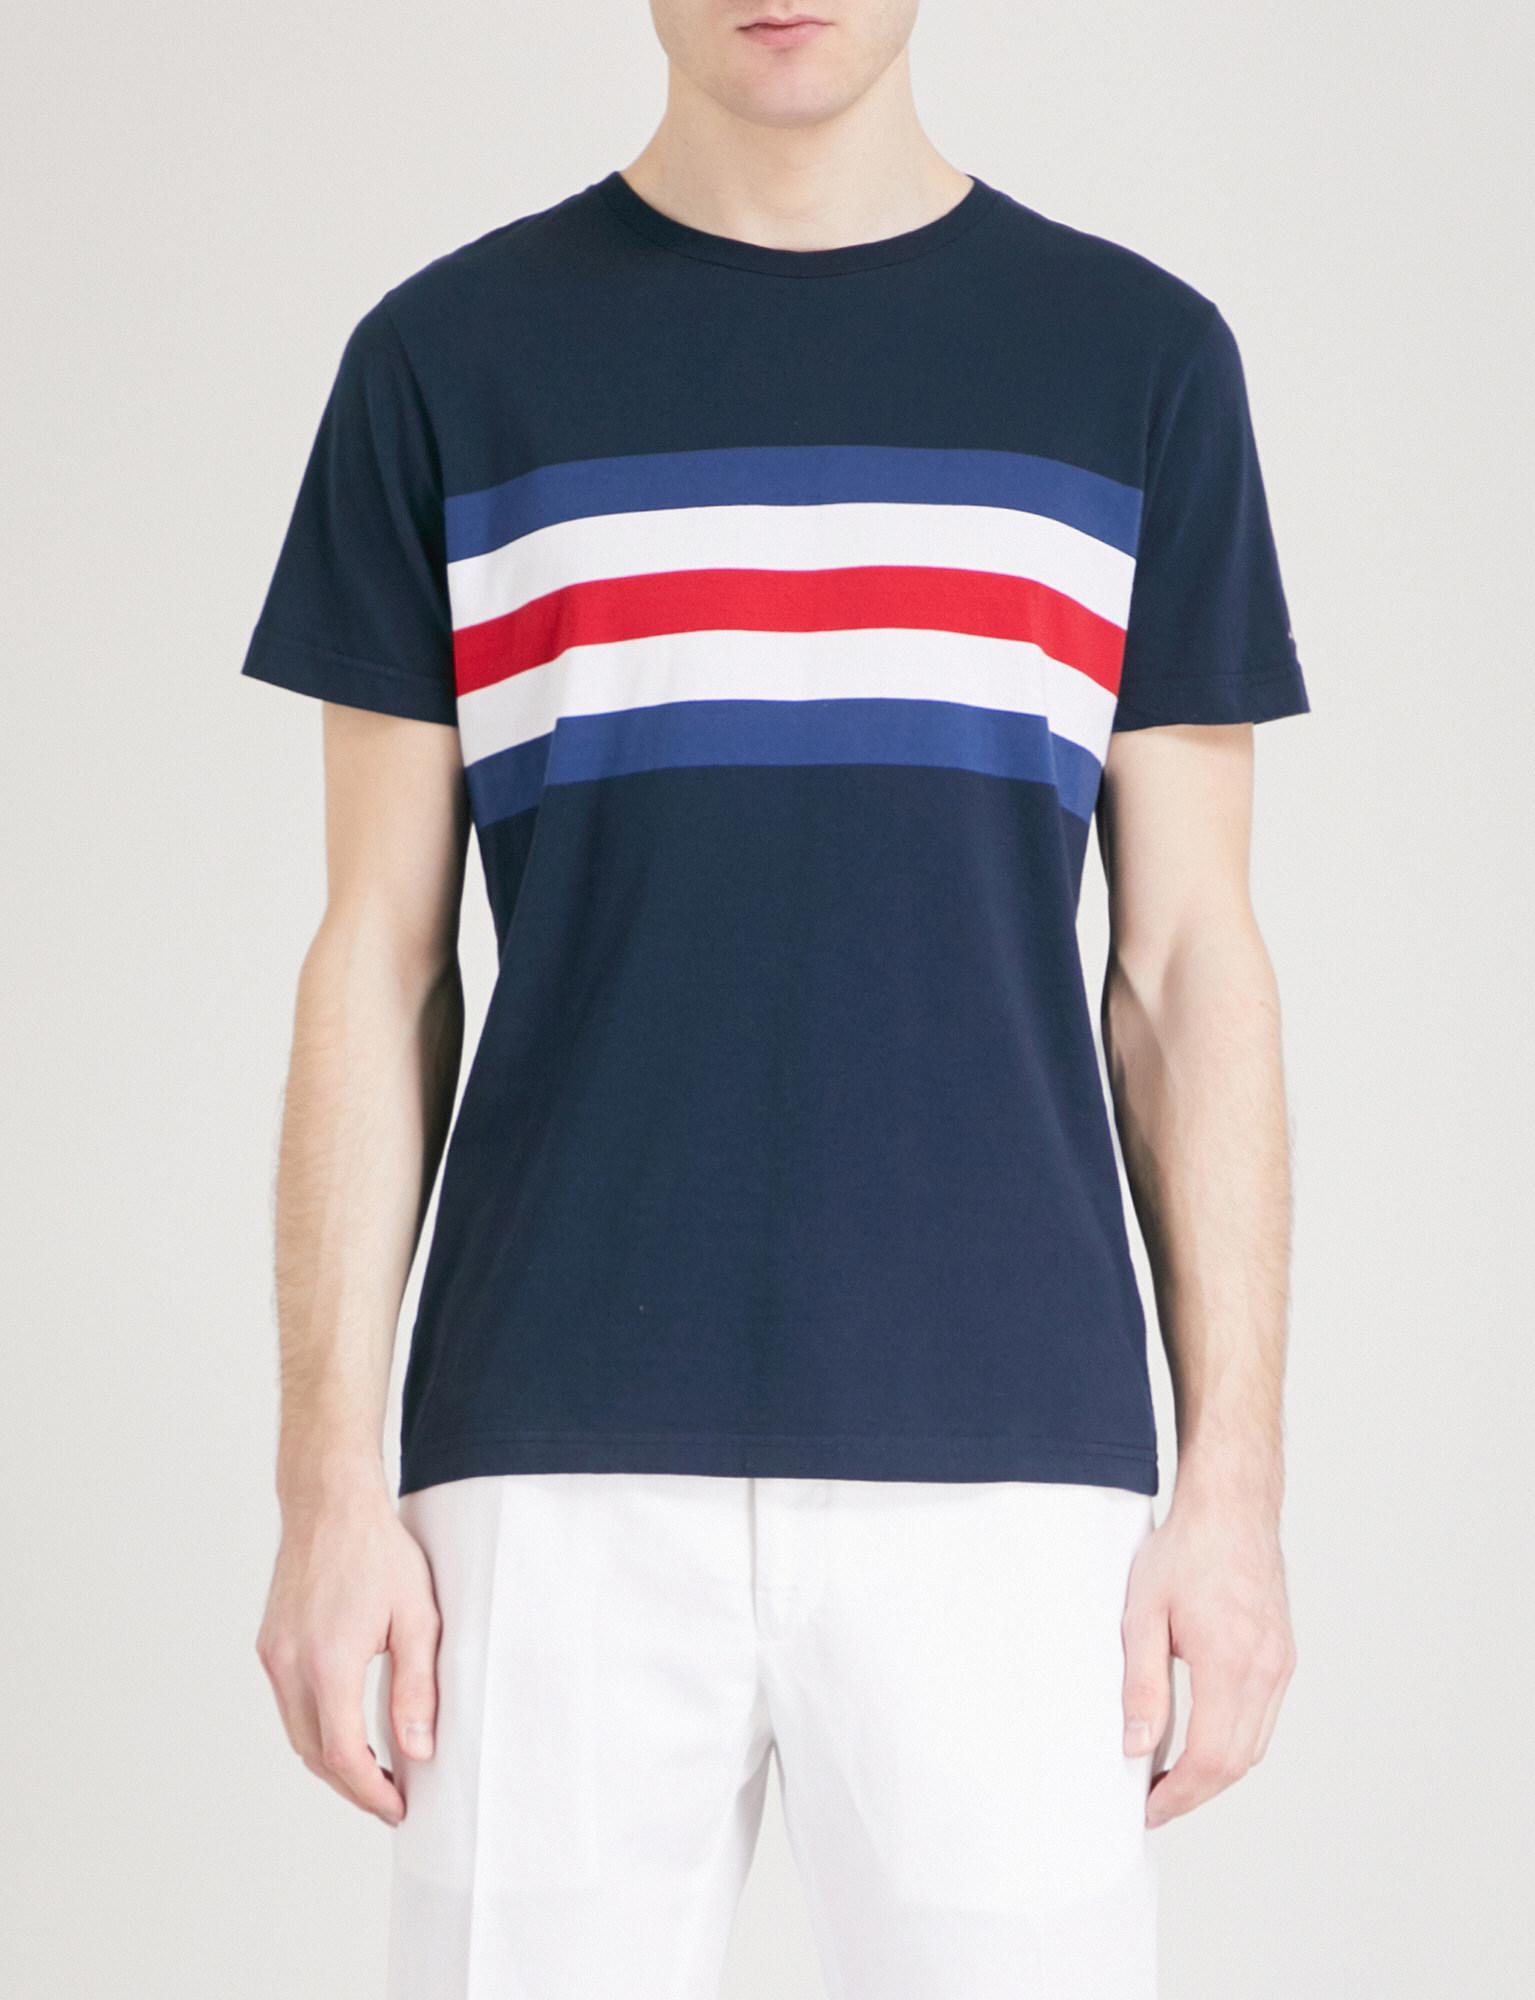 ea2a2dc8 Lyst - Tommy Hilfiger Striped-panel Cotton-jersey T-shirt in Blue ...